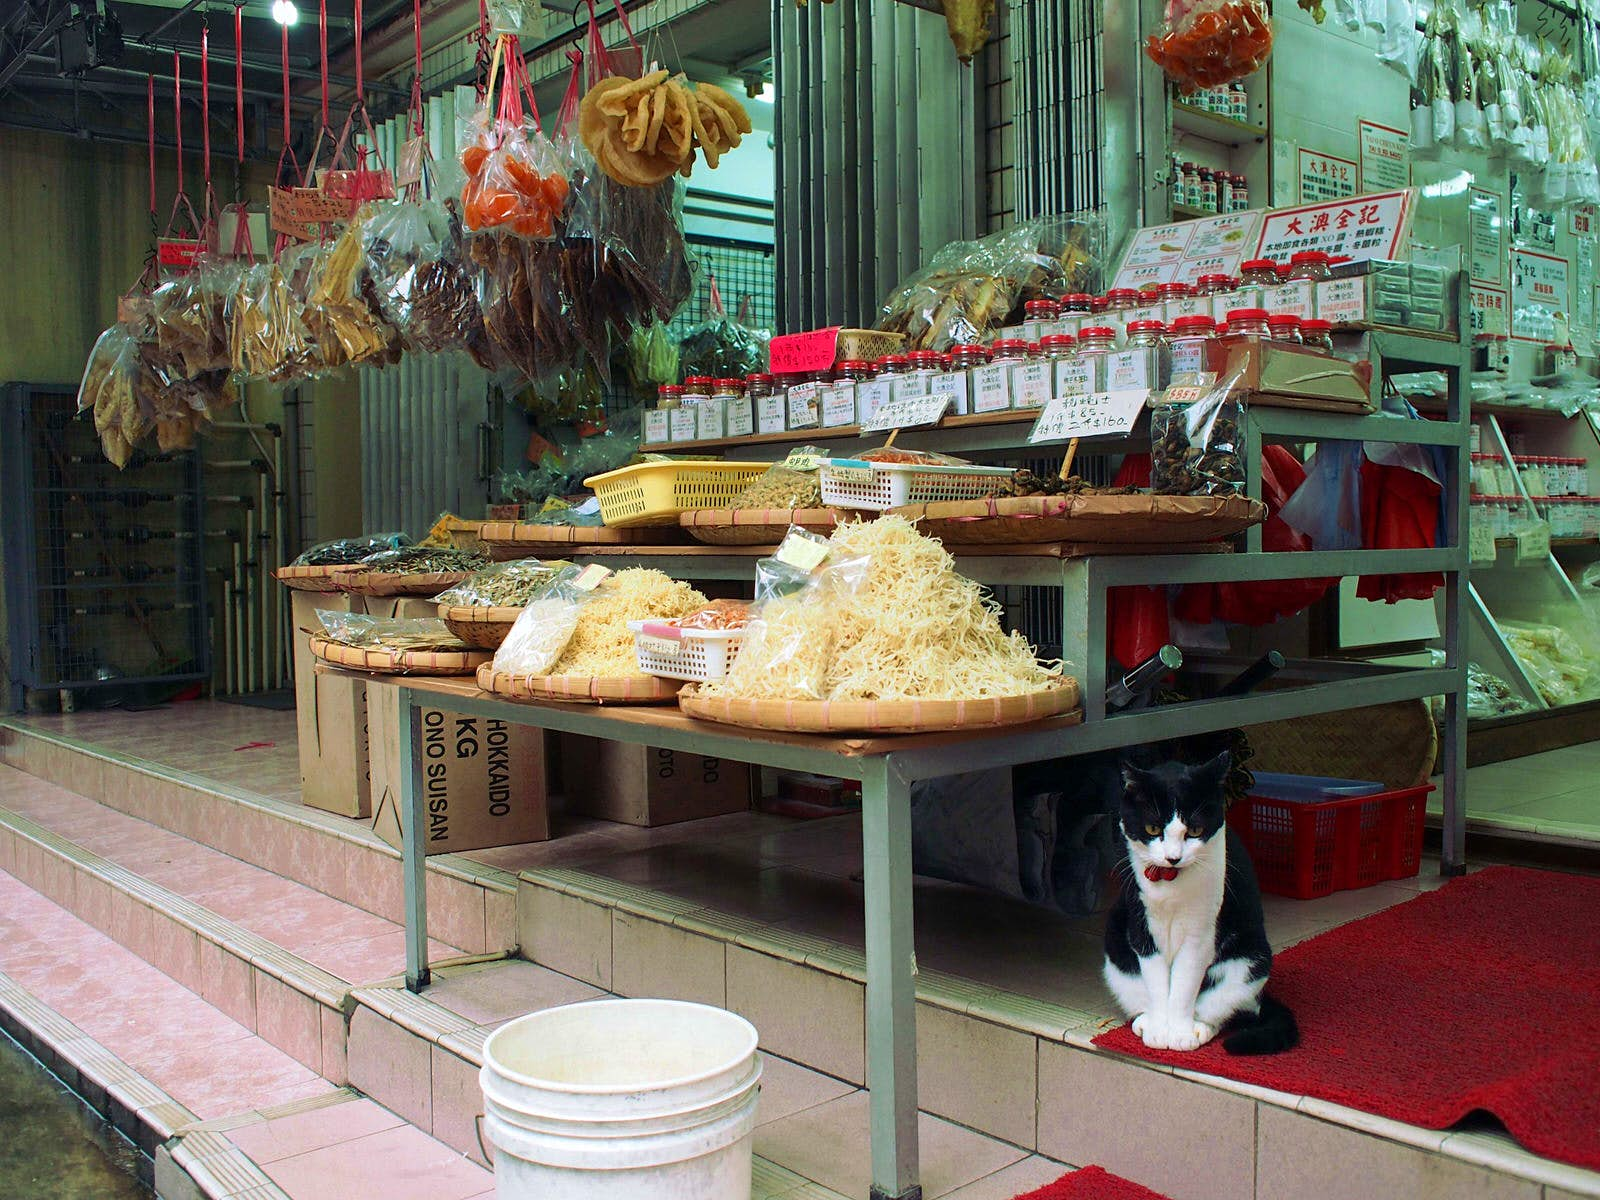 Dried fish hang and sit in piles at a shop storefront, a black and white cat sits on the steps